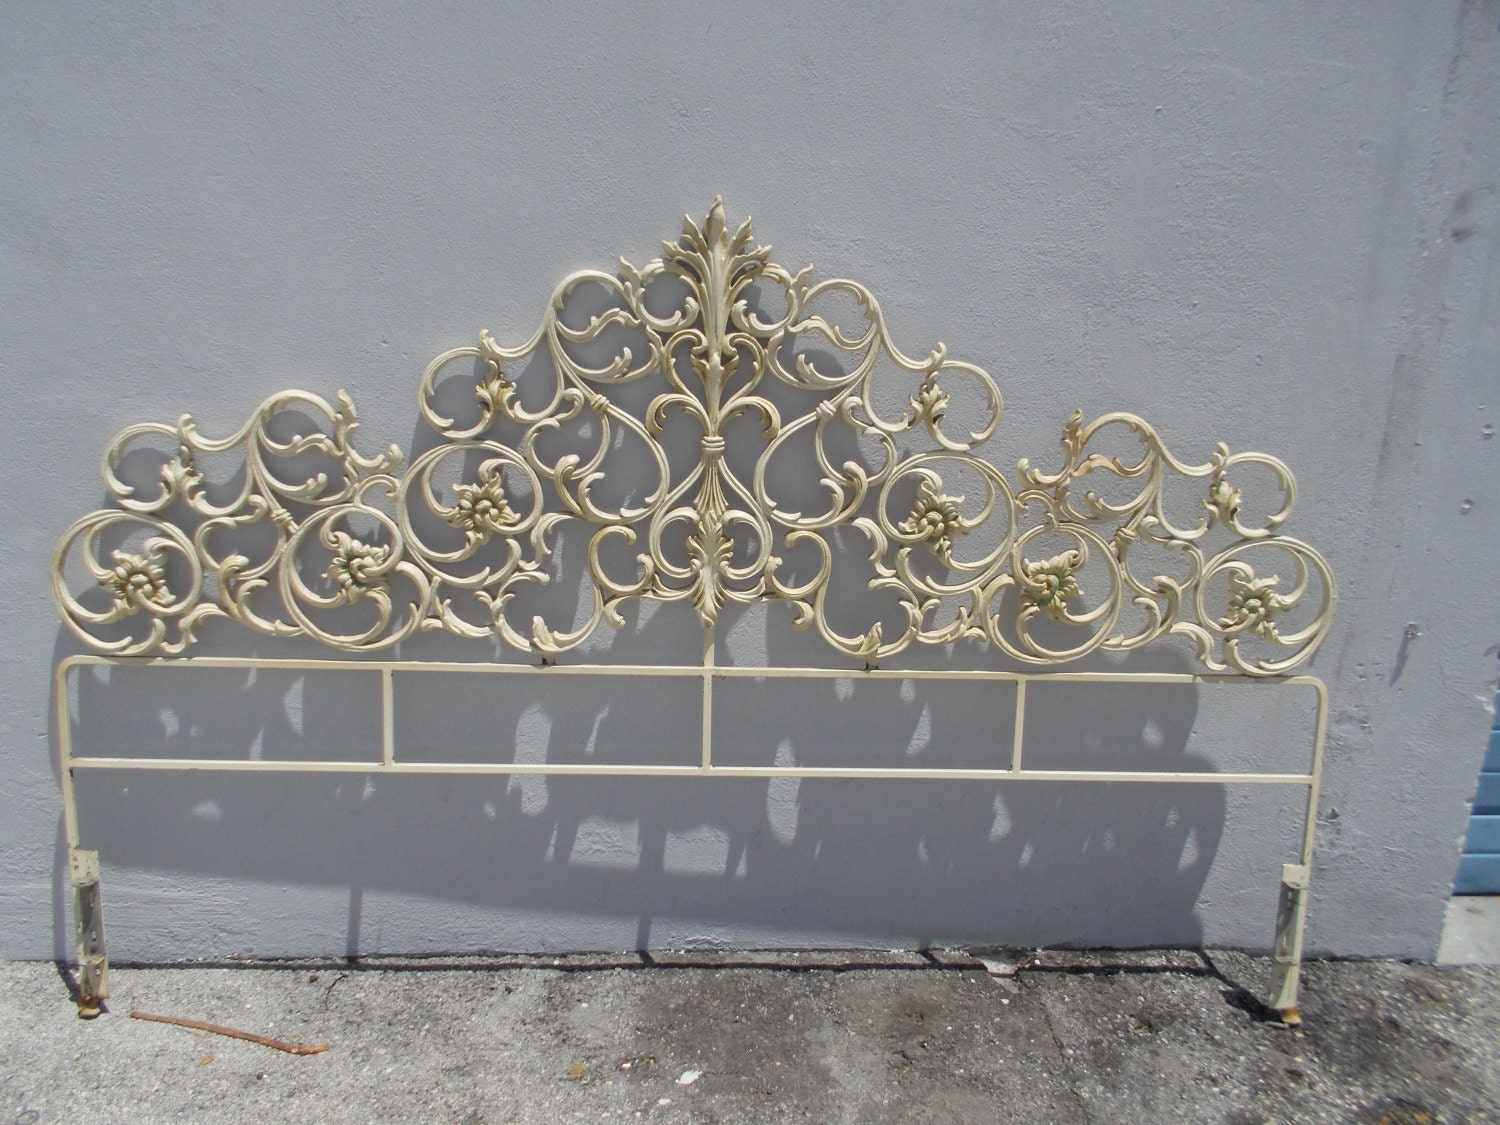 Decorative Hollywood Regency Palm Beach Iron Scroll King Size